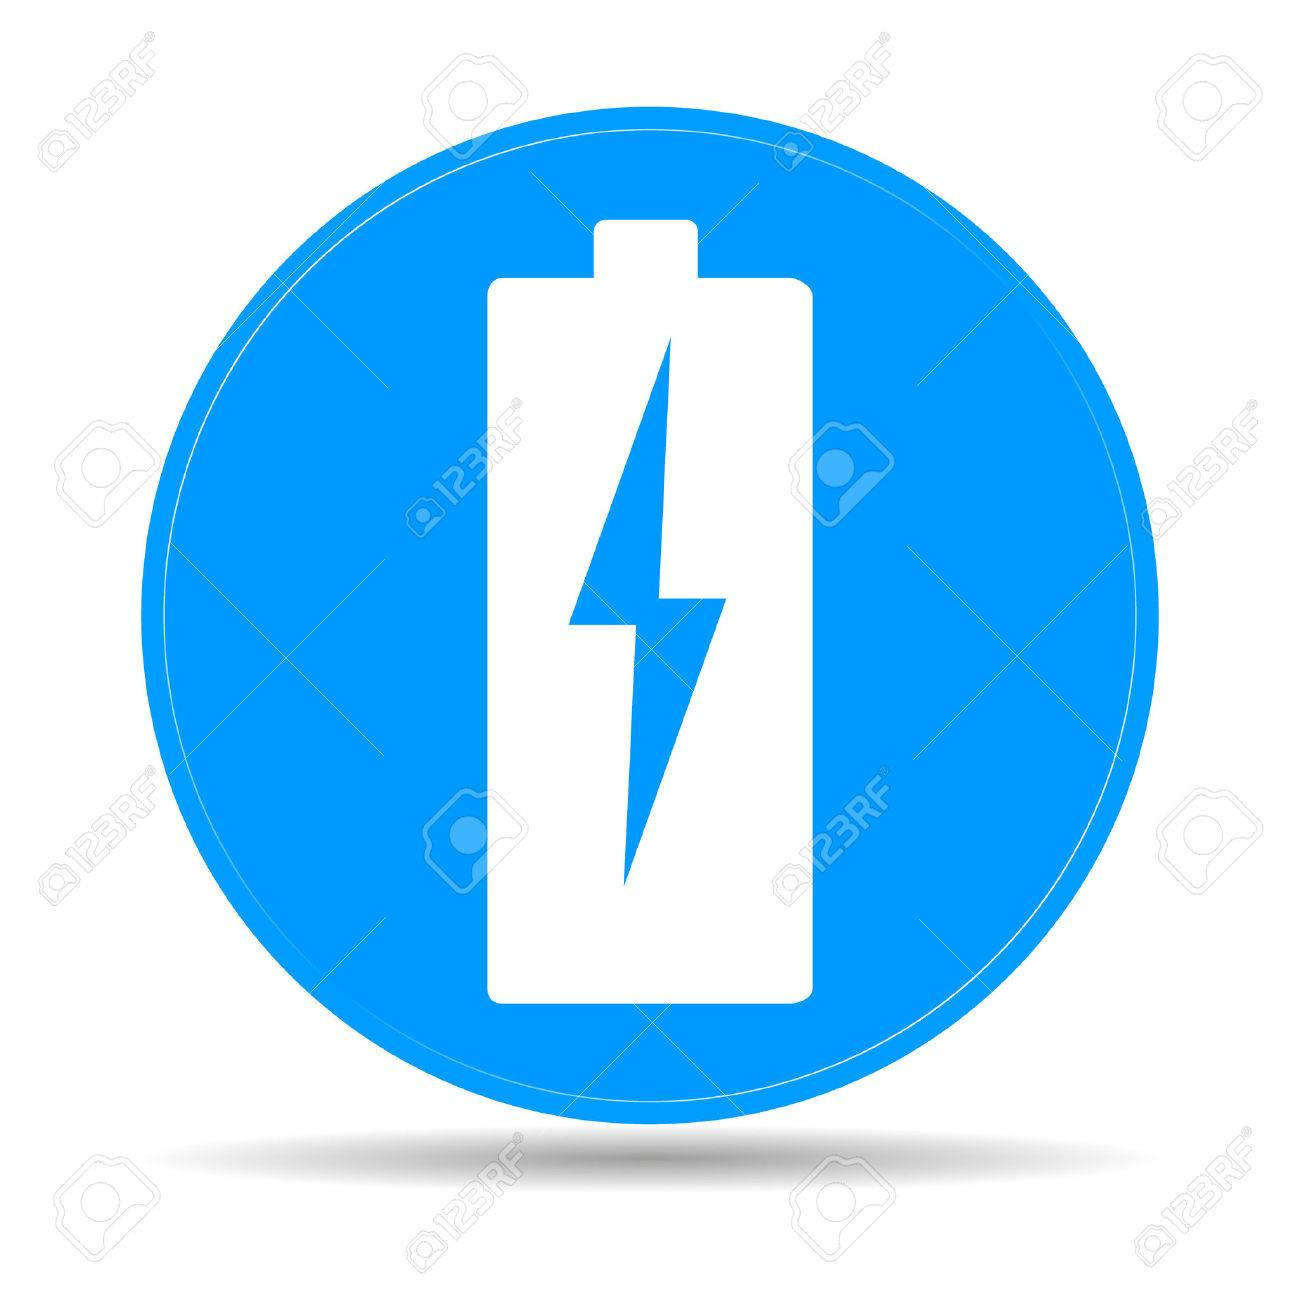 illustration of flat battery sign vector charging energy symbol royalty free cliparts vectors and stock illustration image 35135483 illustration of flat battery sign vector charging energy symbol